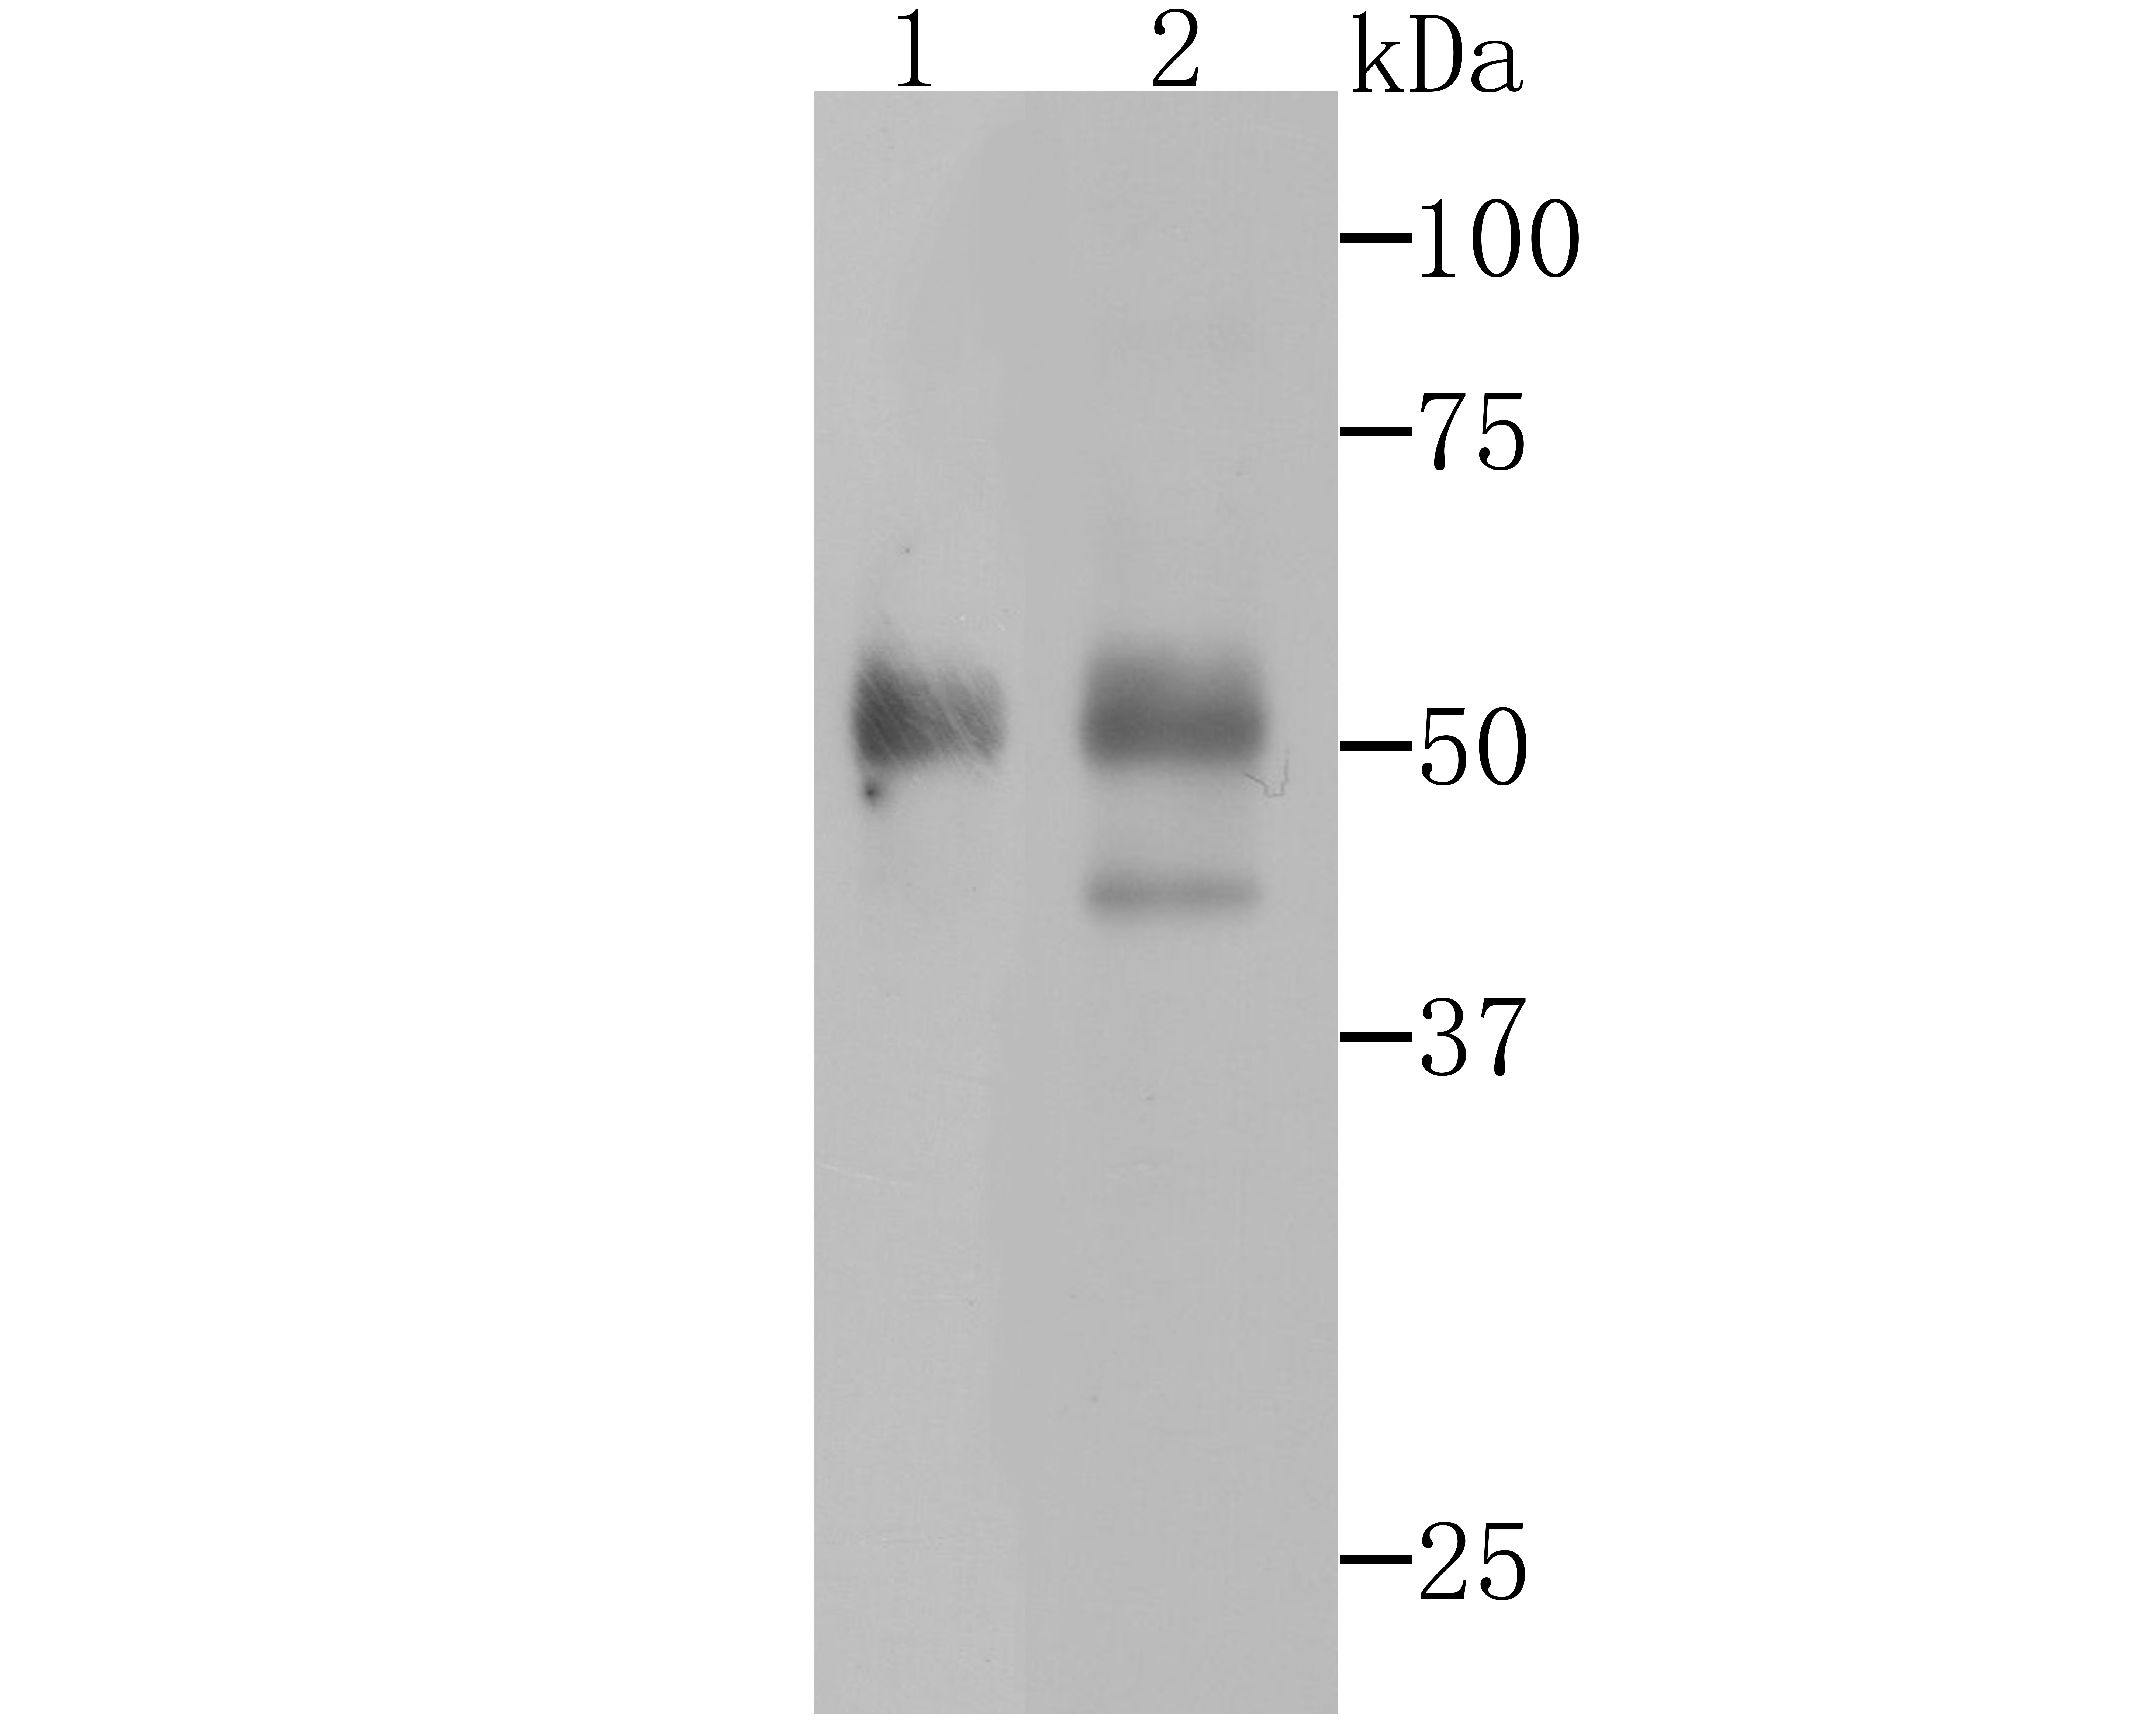 Western blot analysis of Pax8 on human thyroid gland tissue and SKOV-3 cell lysates using anti-Pax8 antibody at 1/500 dilution.